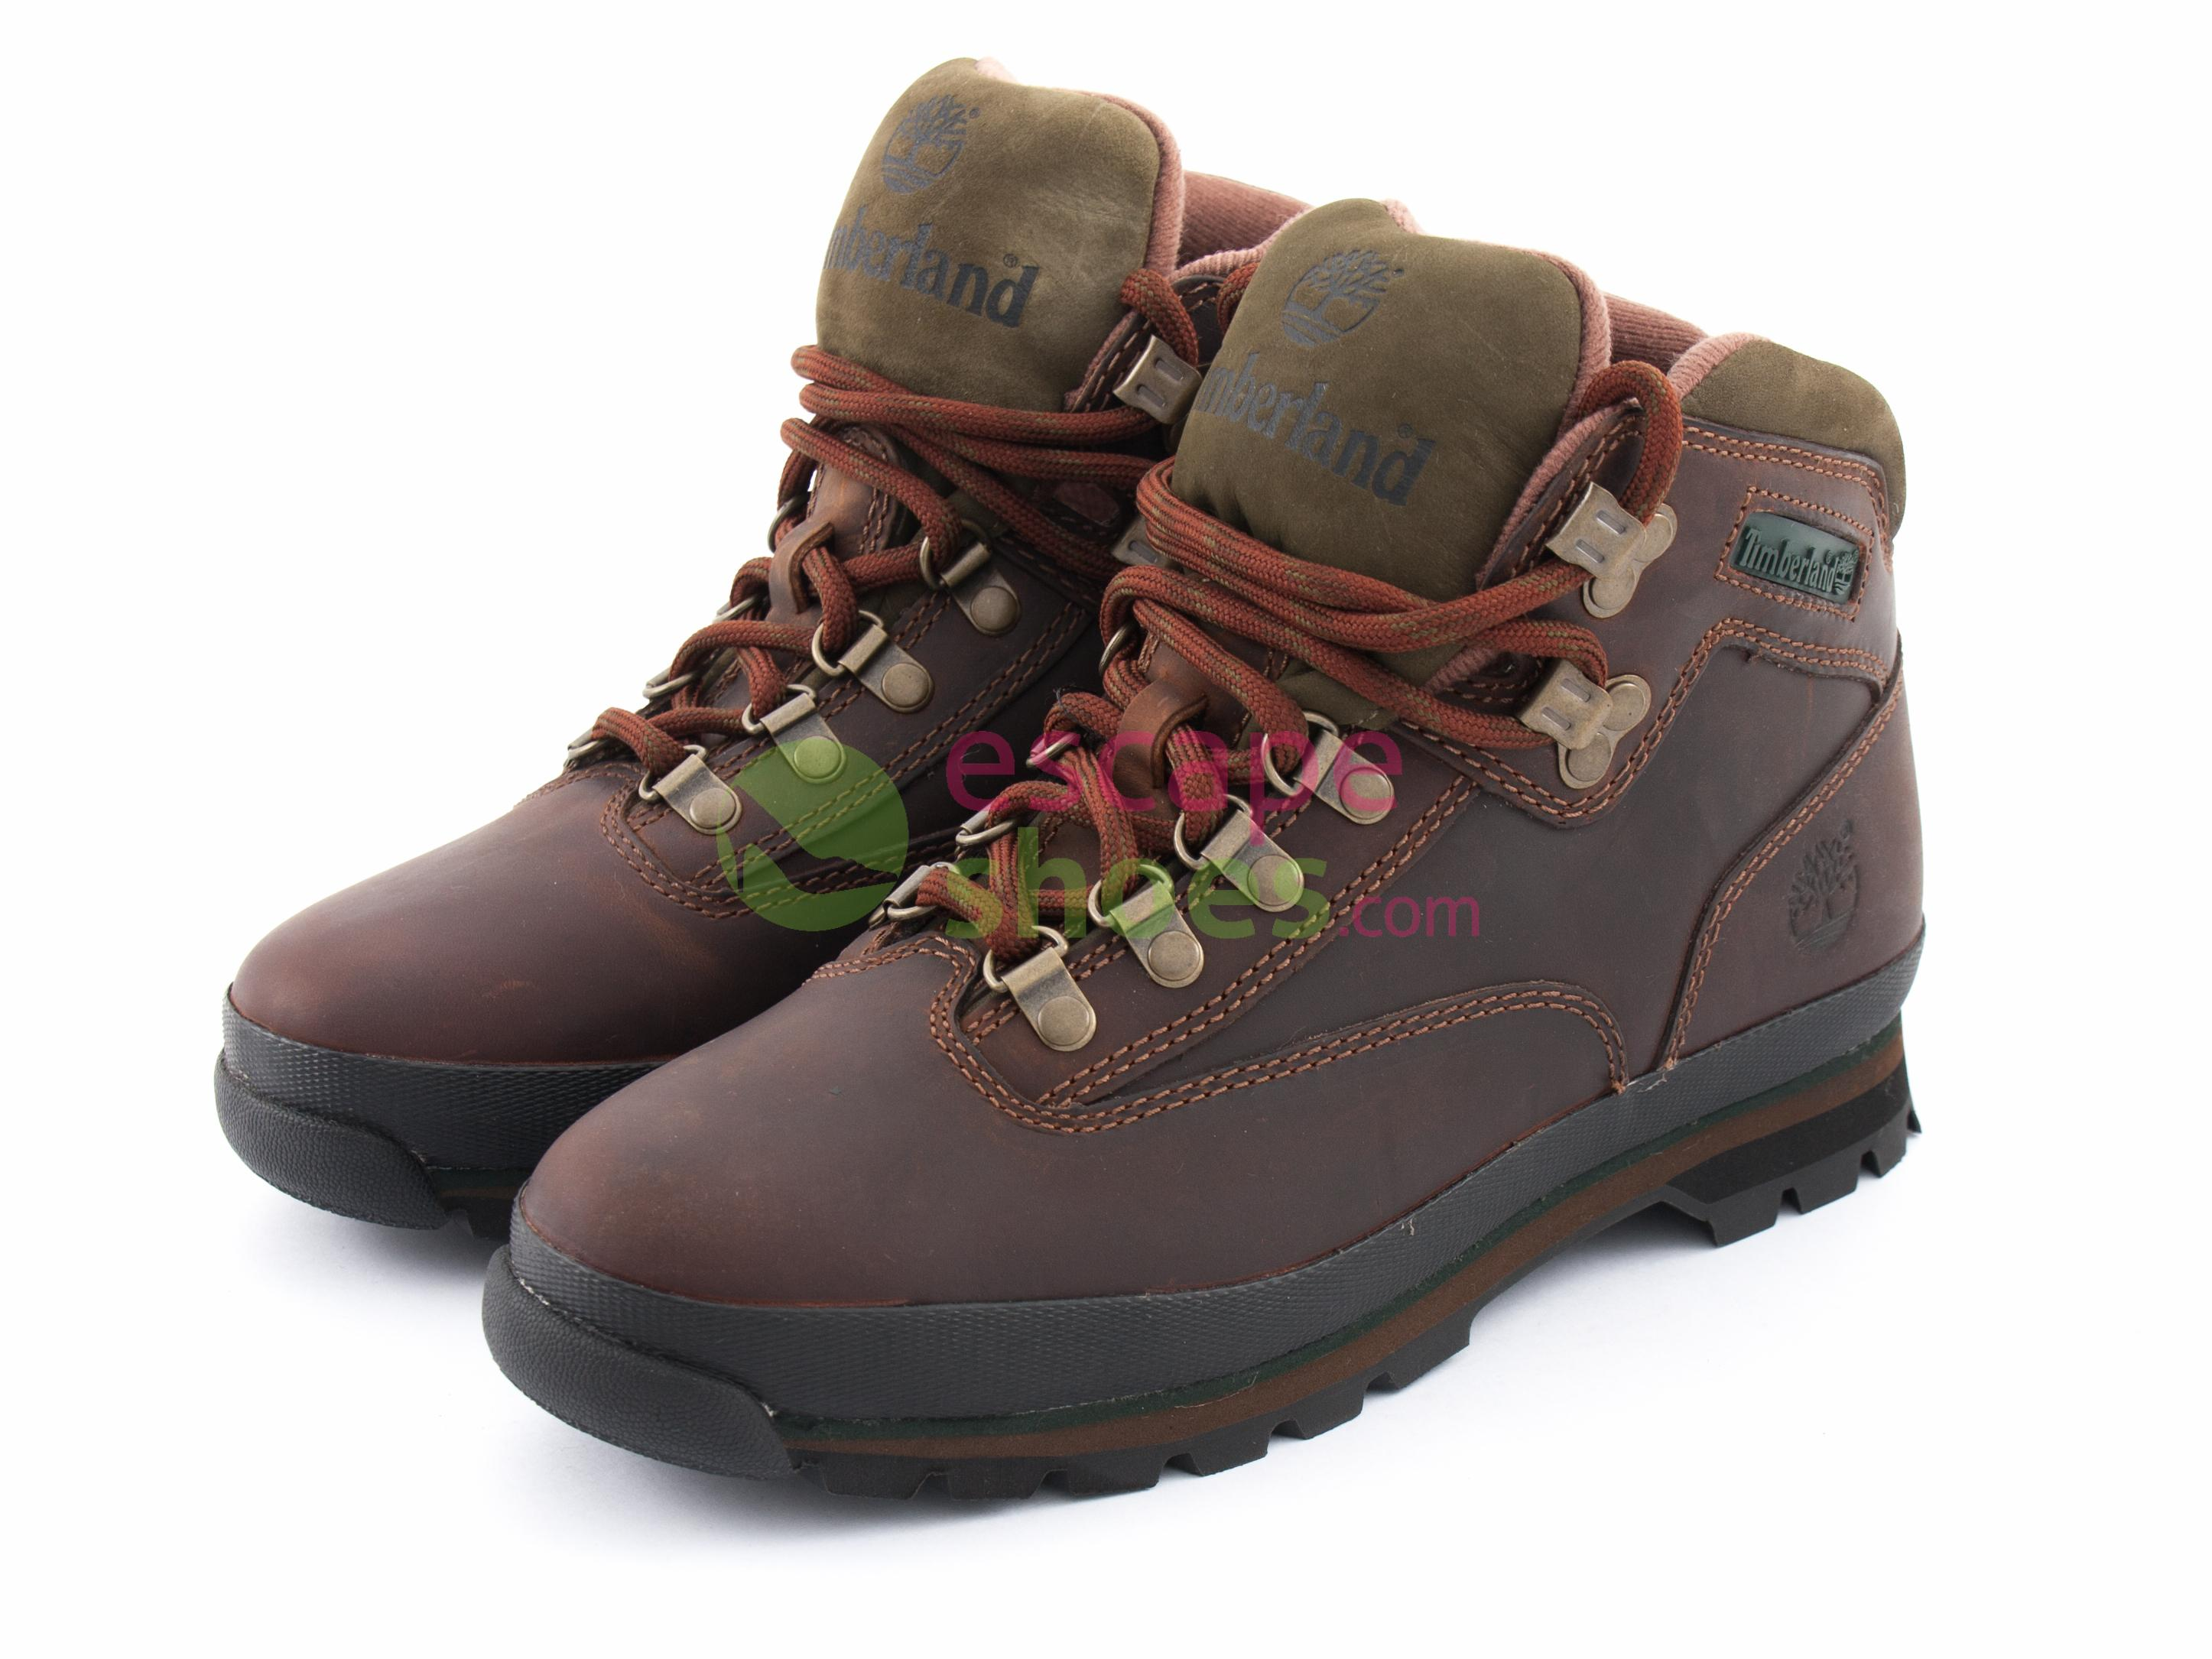 21167b55138 Montain Boots TIMBERLAND 95100 Men Heritage Euro Leather Hiker